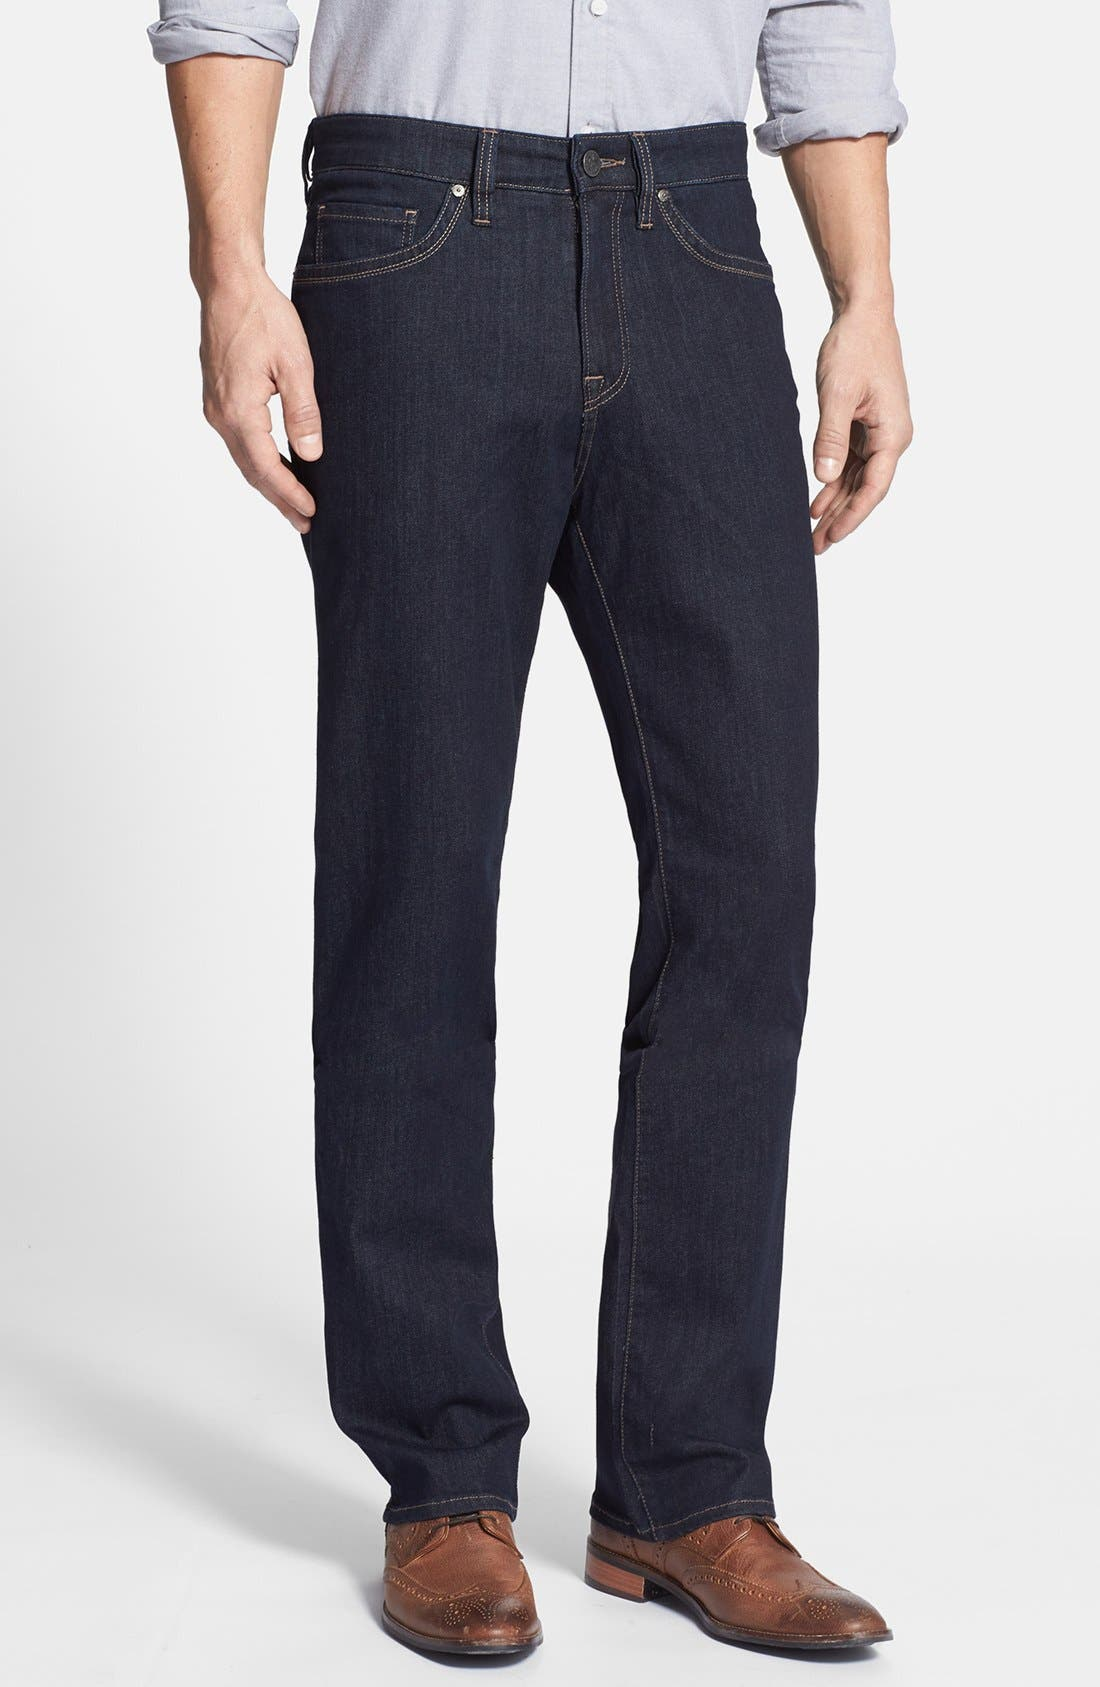 'Charisma' Classic Relaxed Fit Jeans,                         Main,                         color, MIDNIGHT CASHMERE